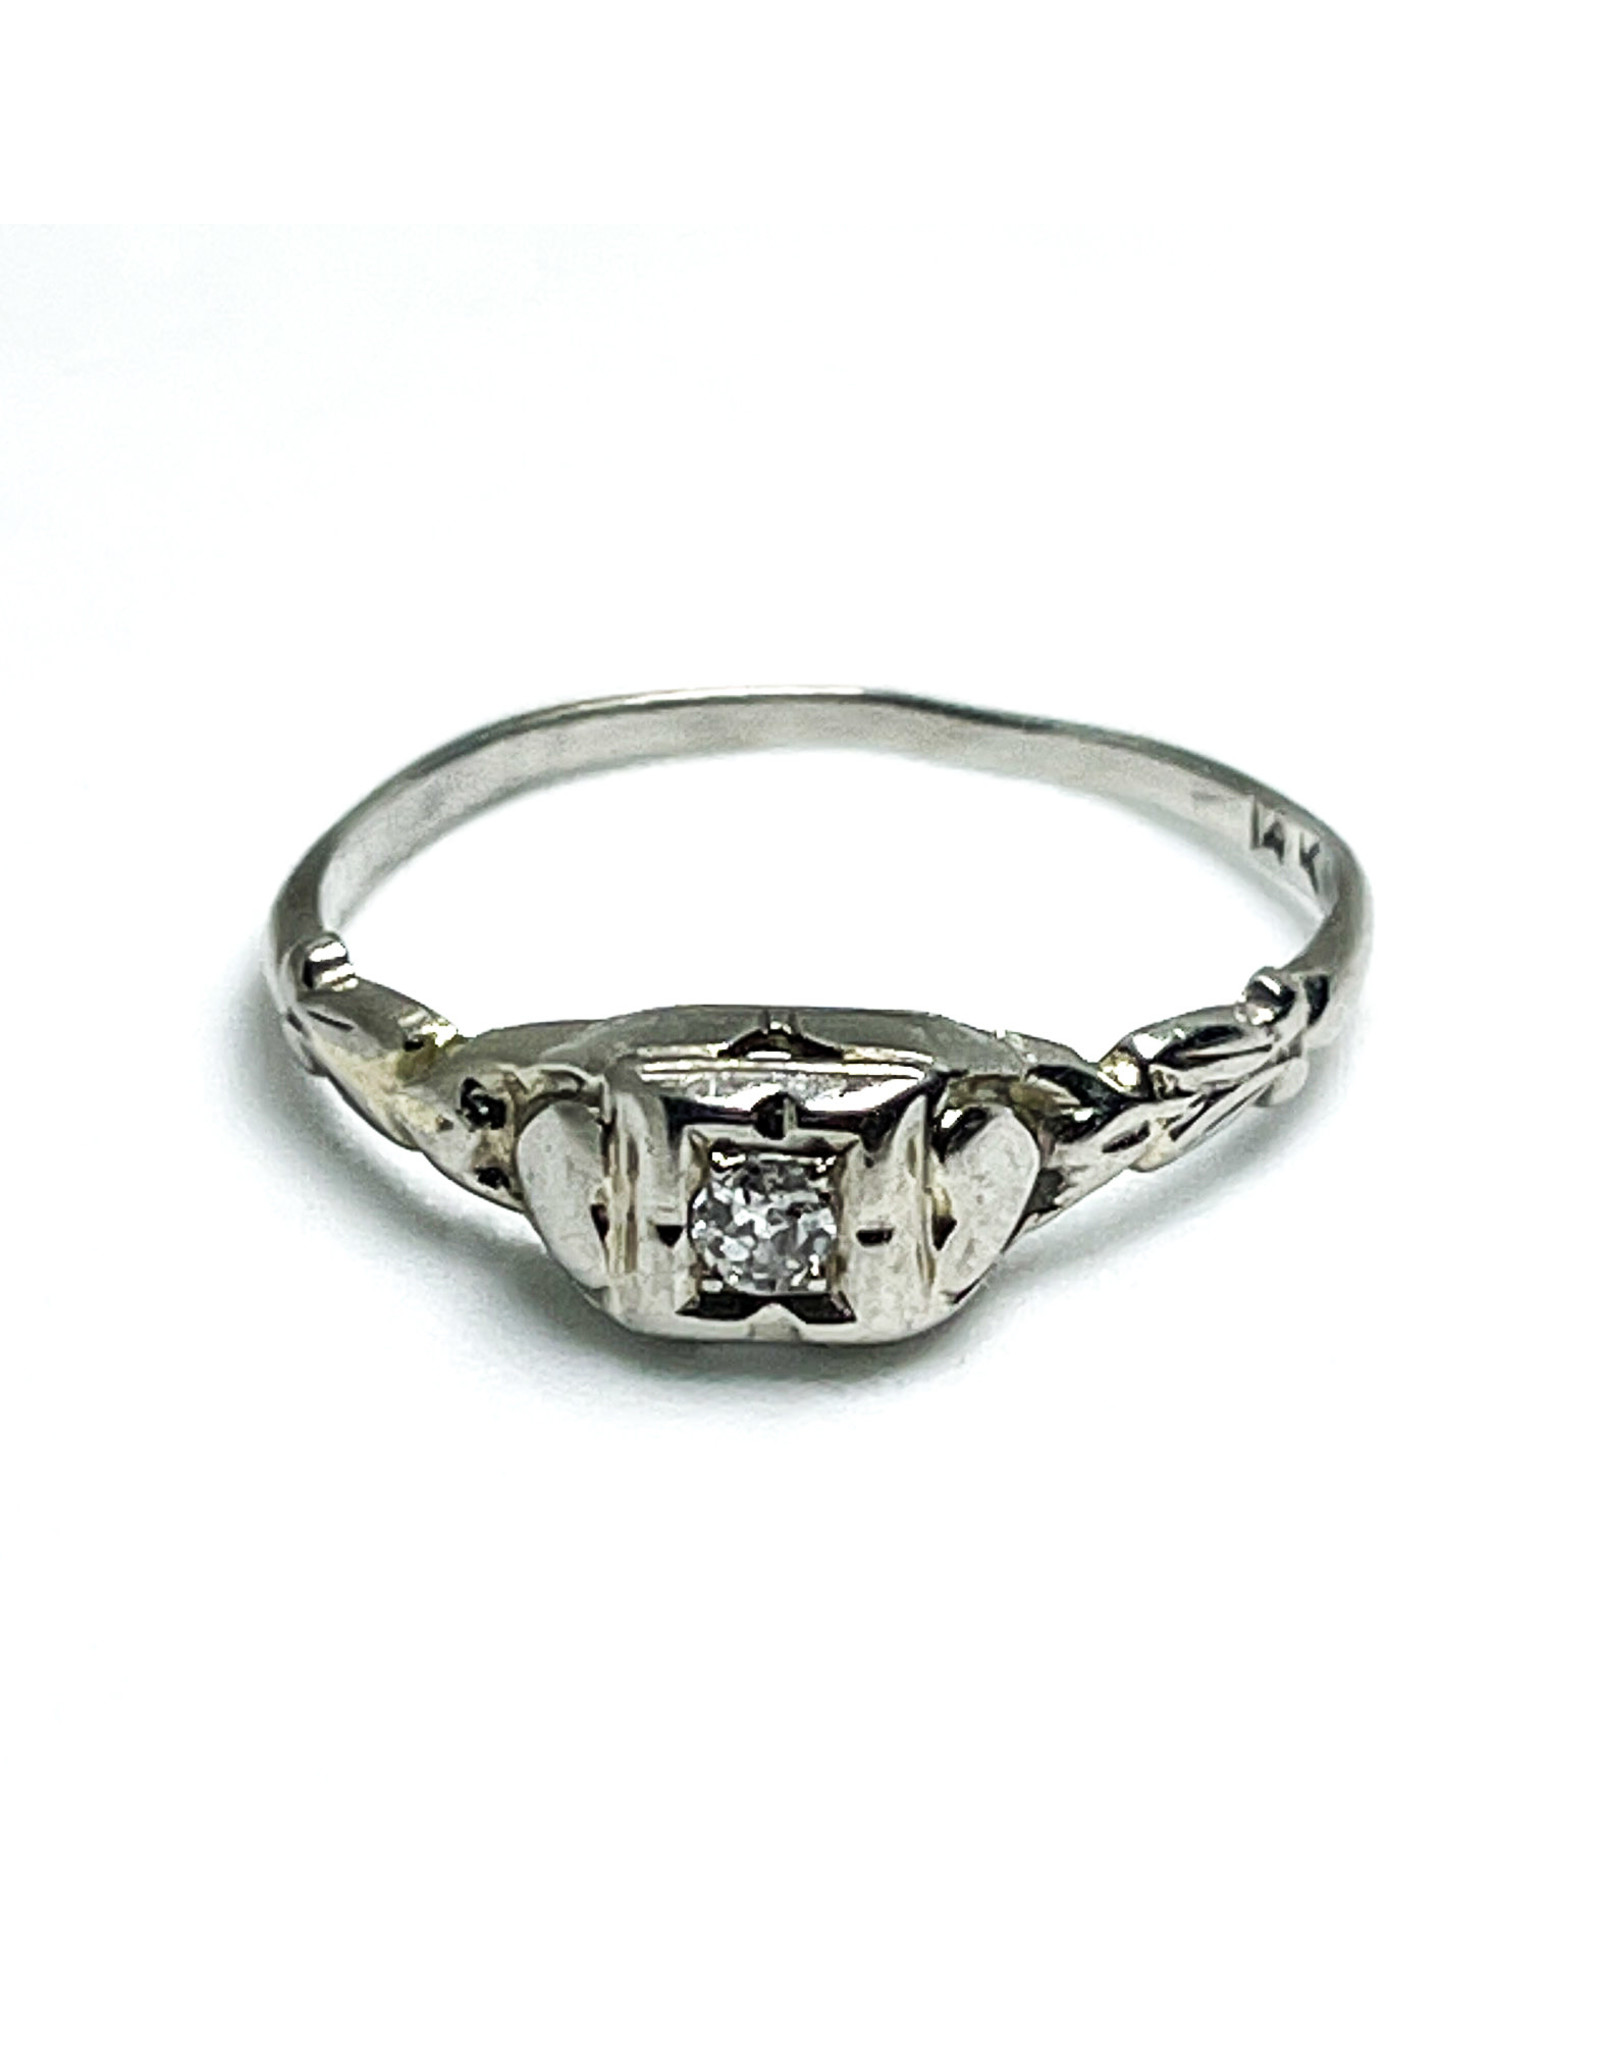 Antique 14K White Gold Engagement Ring with Small Diamond